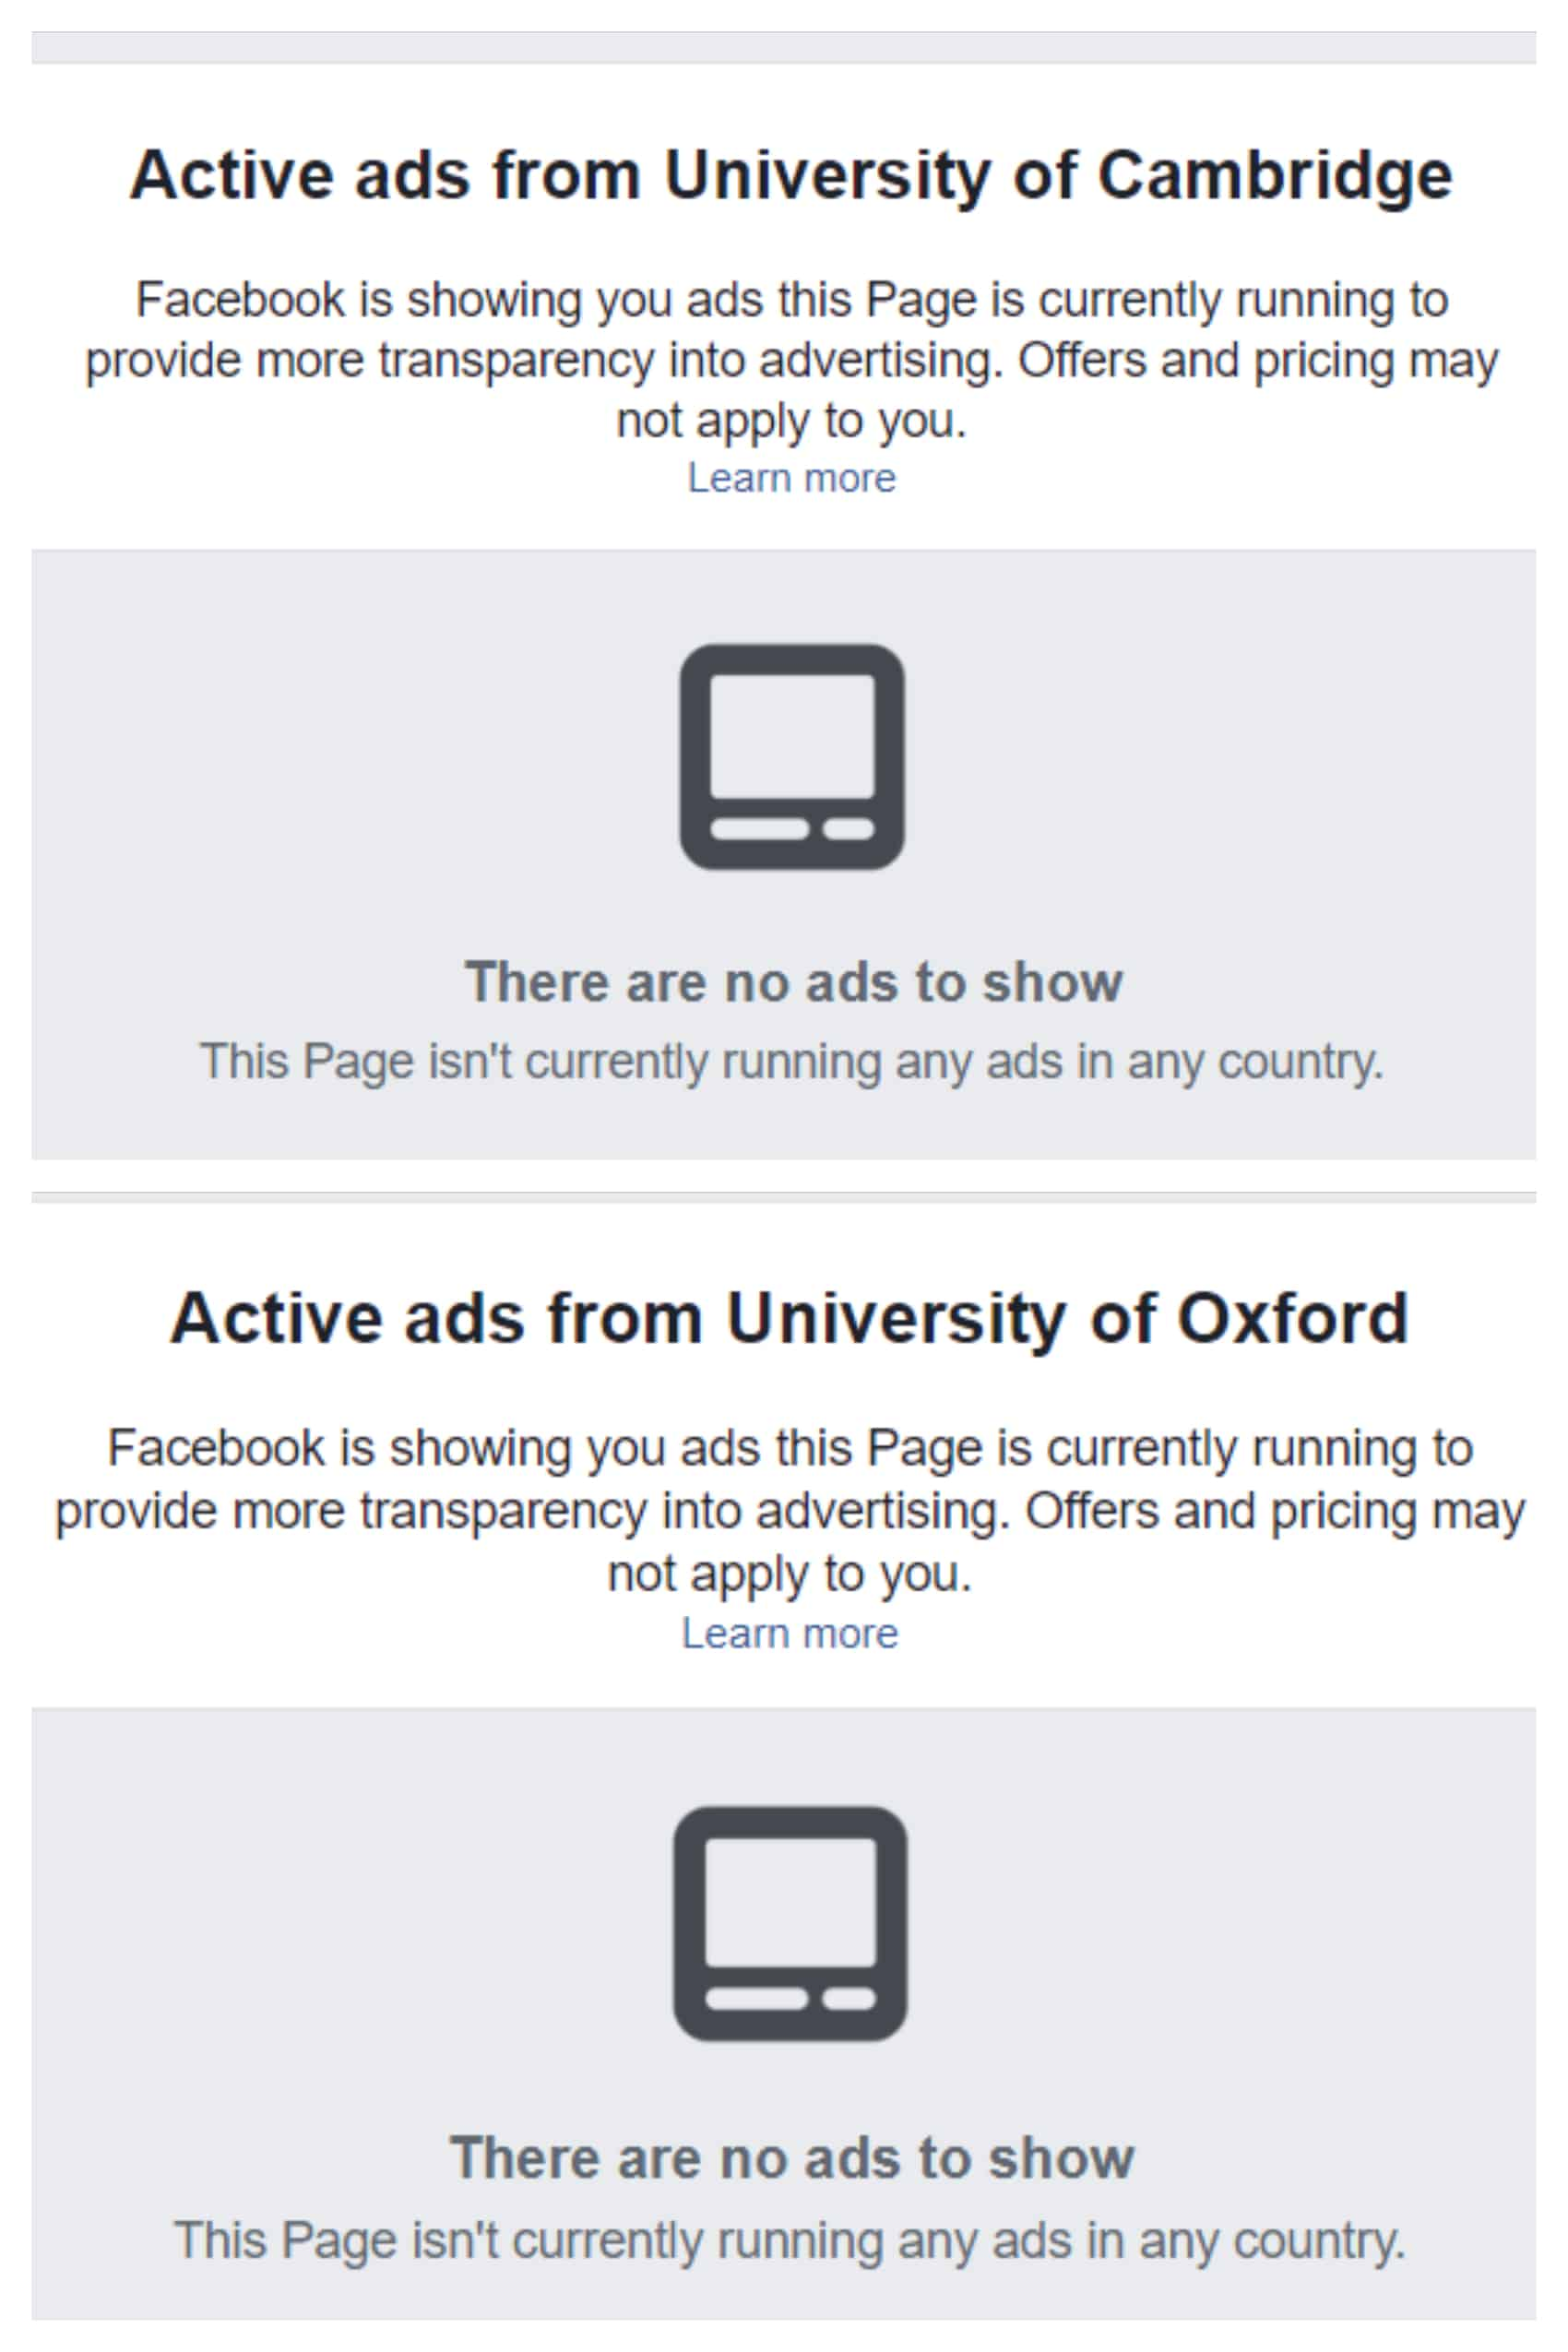 6 Things You Can Learn From Facebook's Ad Transparency Tools